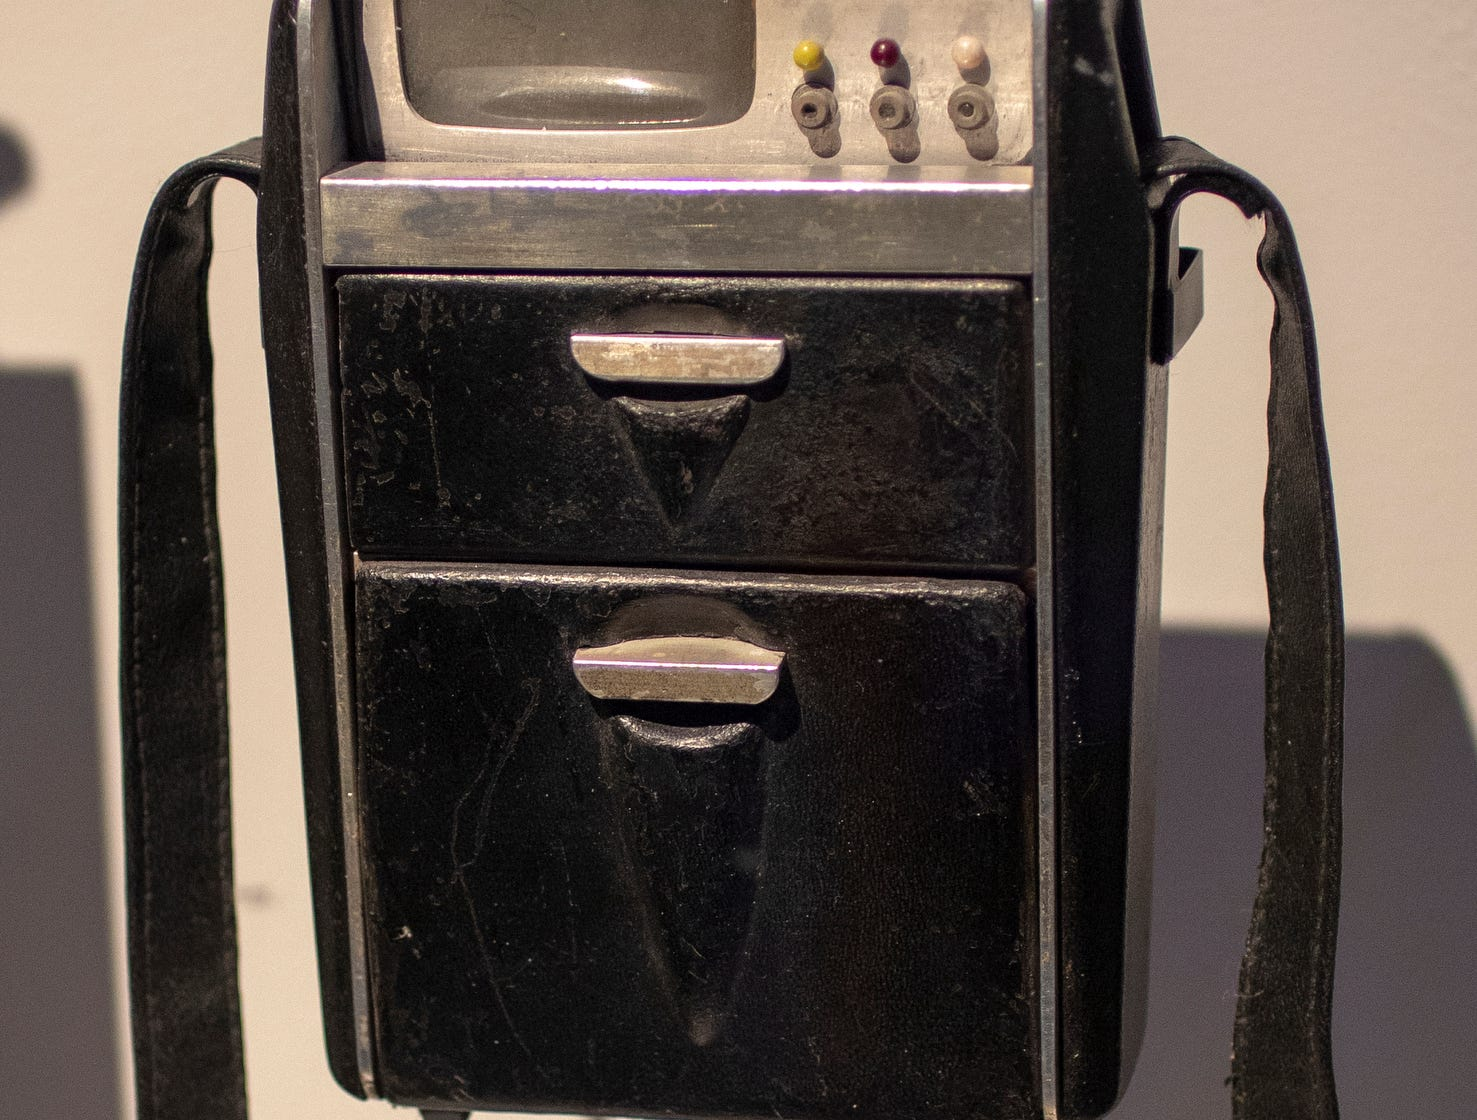 """A tricorder from the original """"Star Trek"""" series is seen at The Children's Museum of Indianapolis, Wednesday, Jan. 23, 2019. The """"Star Trek: Exploring New Worlds"""" exhibit is made up of set pieces, ship models and outfits used during various Star Trek shows and movies and is on display at the museum from Feb. 2 through April 7, 2019."""